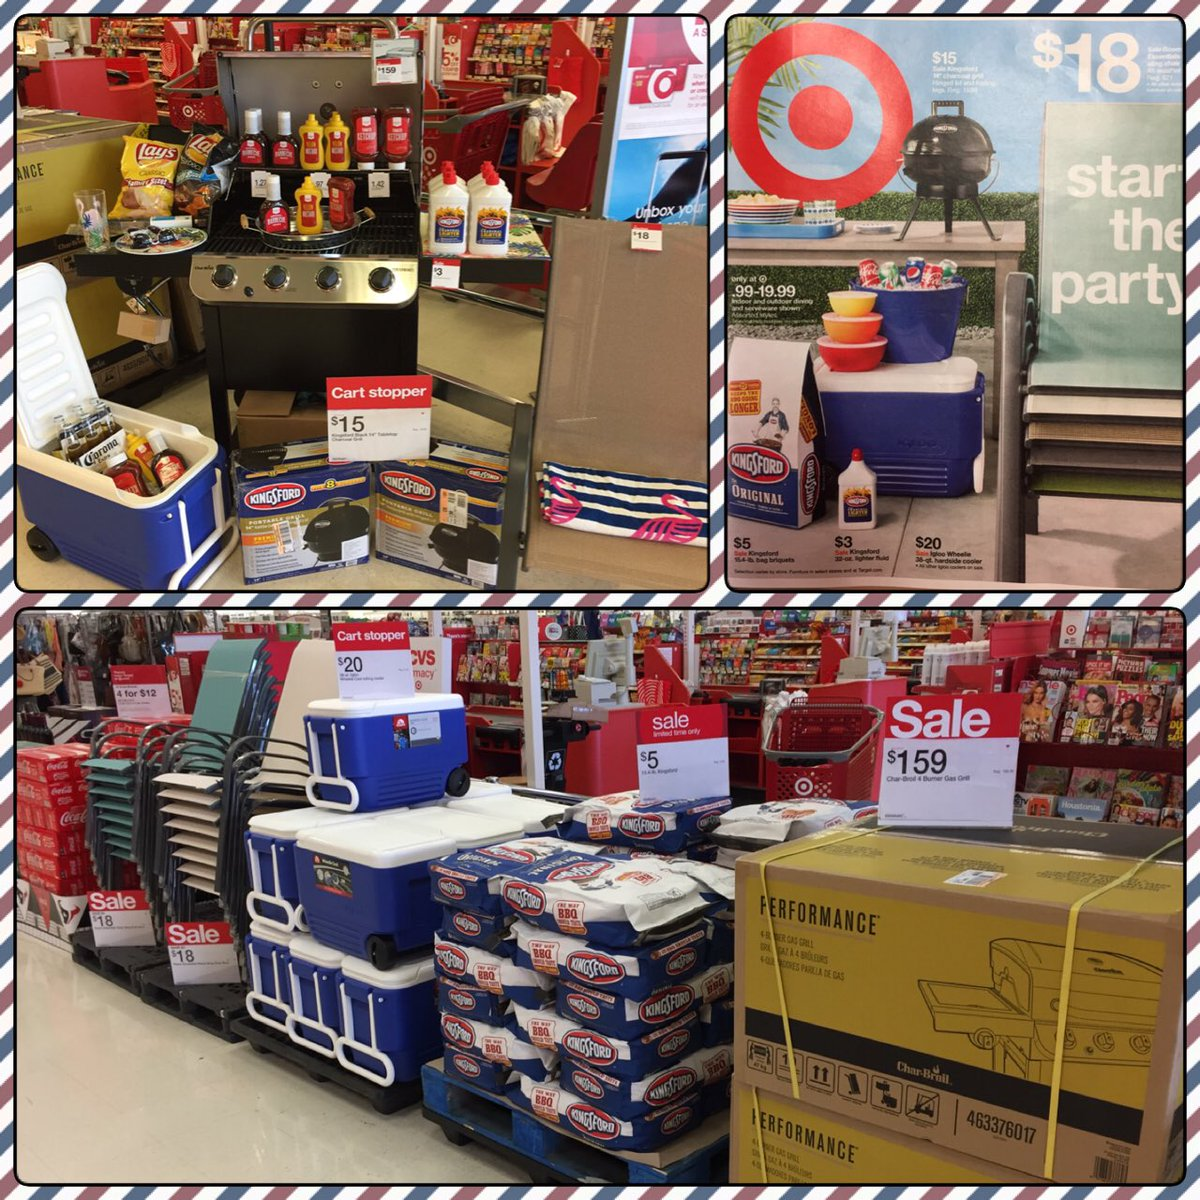 T1535 is ready to drive sales this Memorial Day Week! @johnp_sheehan @RonD303 #G392 #Target #D303<br>http://pic.twitter.com/9UdNQOmly7